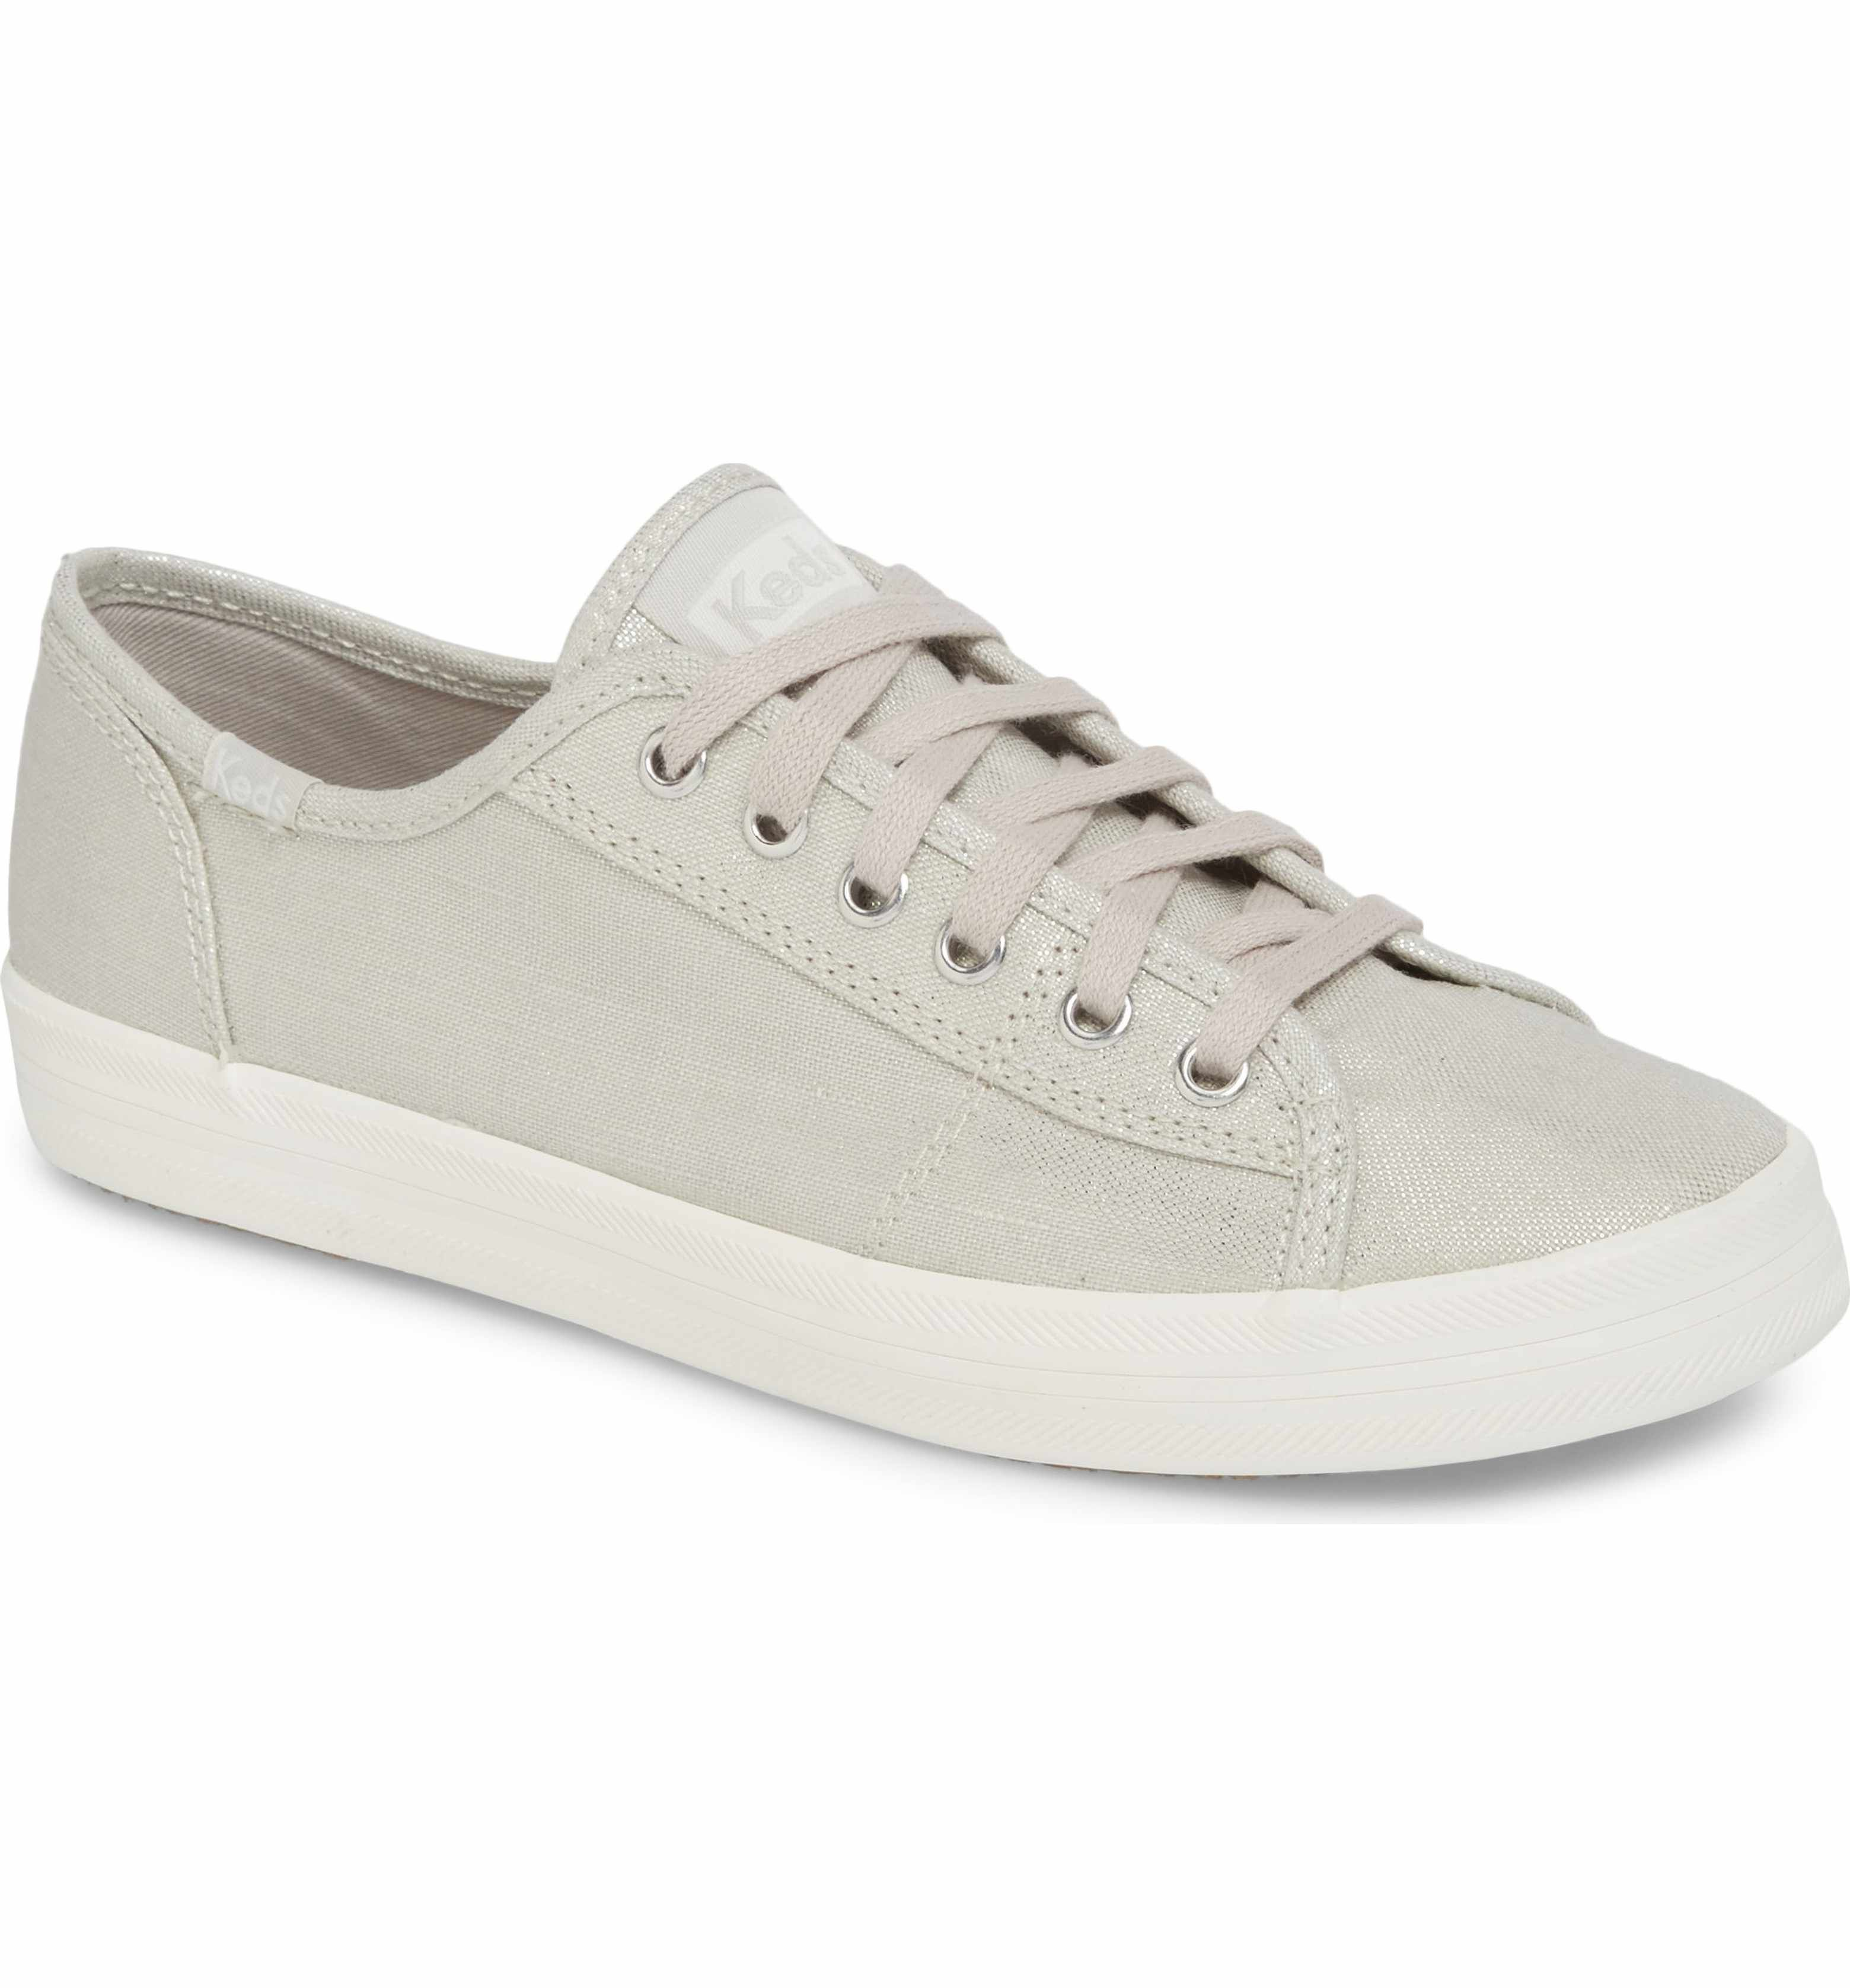 Keds Women's Keds Kickstart Metallic Sneaker at4ics